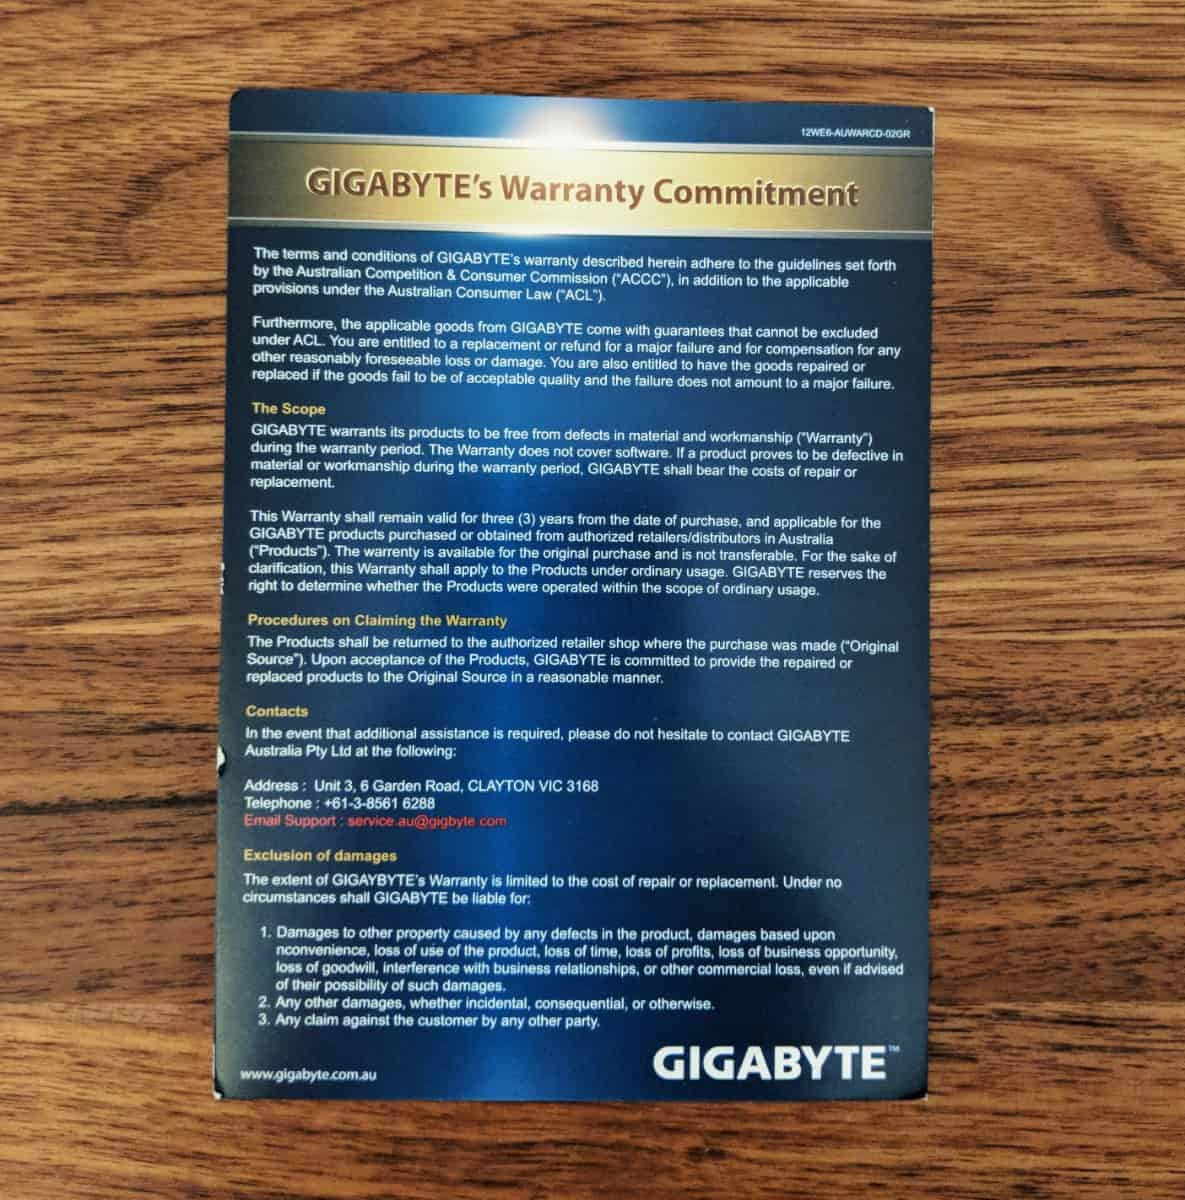 Gigabyte-GTX1080-G1-Photos-13 Gigabyte GTX1080 G1 Gaming Review